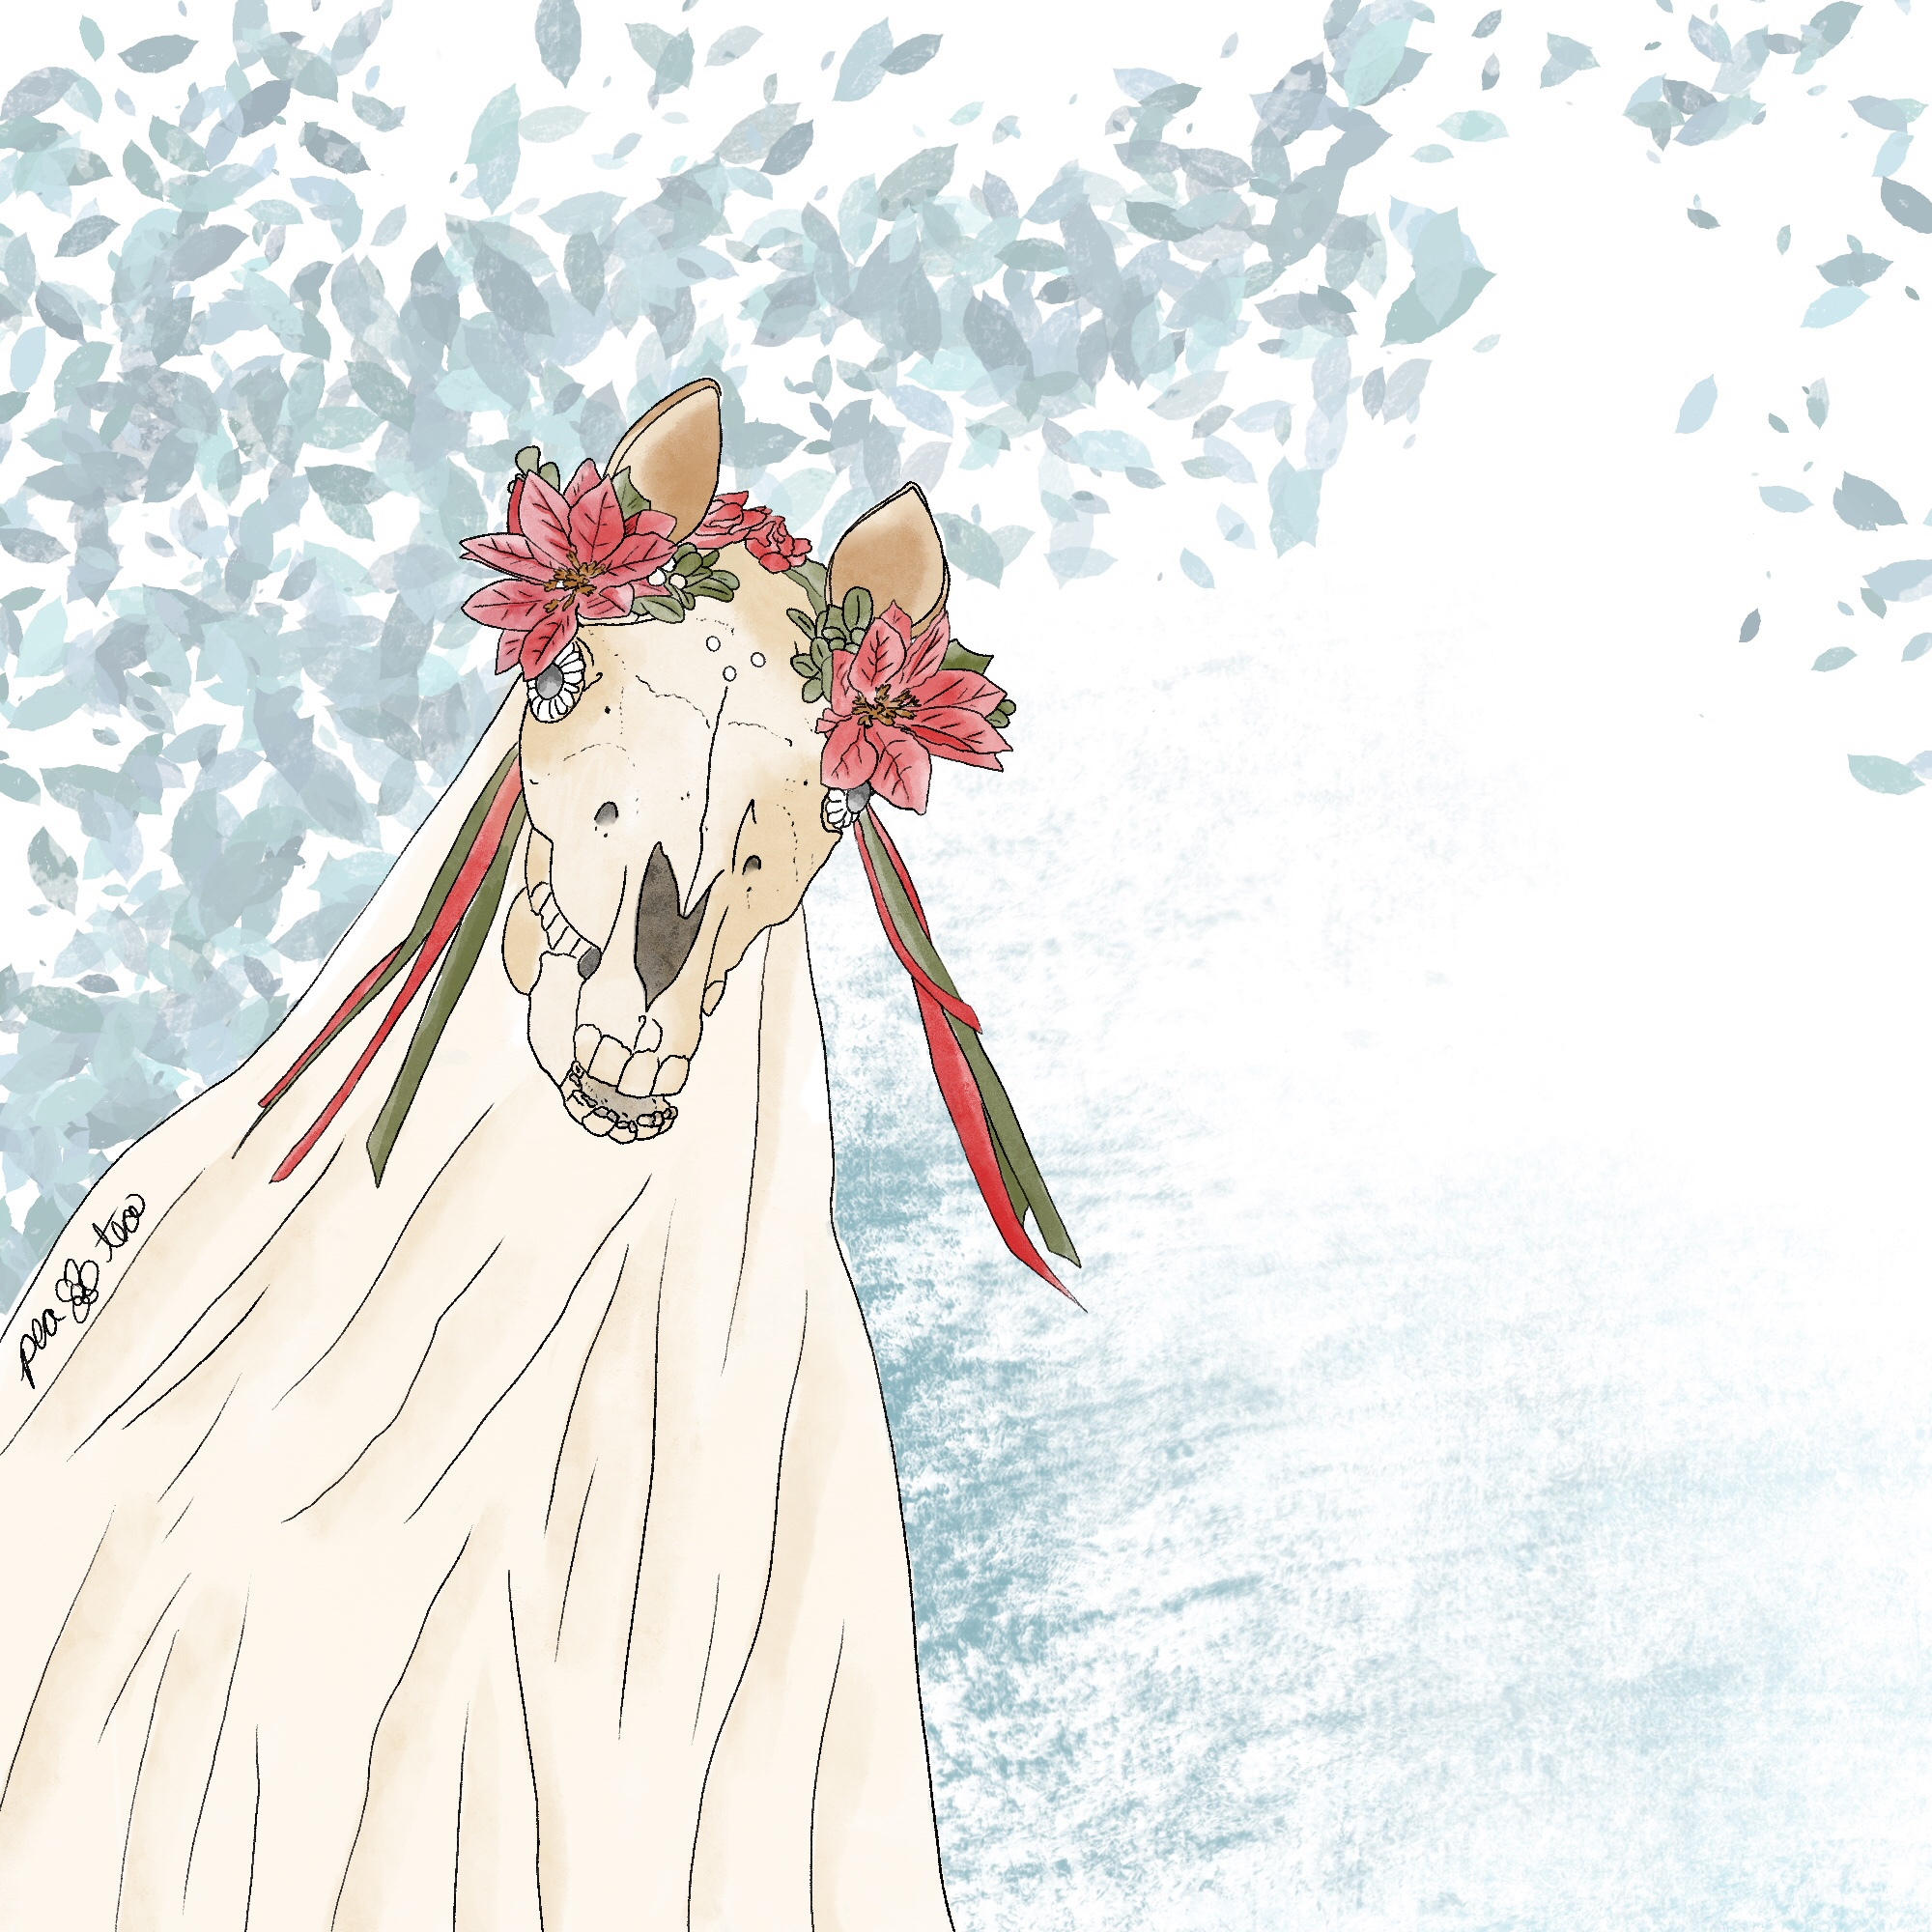 Colored pencil sketch of Mari Lwyd, the welsh horse skull christmas tradition. The skull has poinsettia flowers and ribbons on her head, and little blue leaves are swirling in the background.